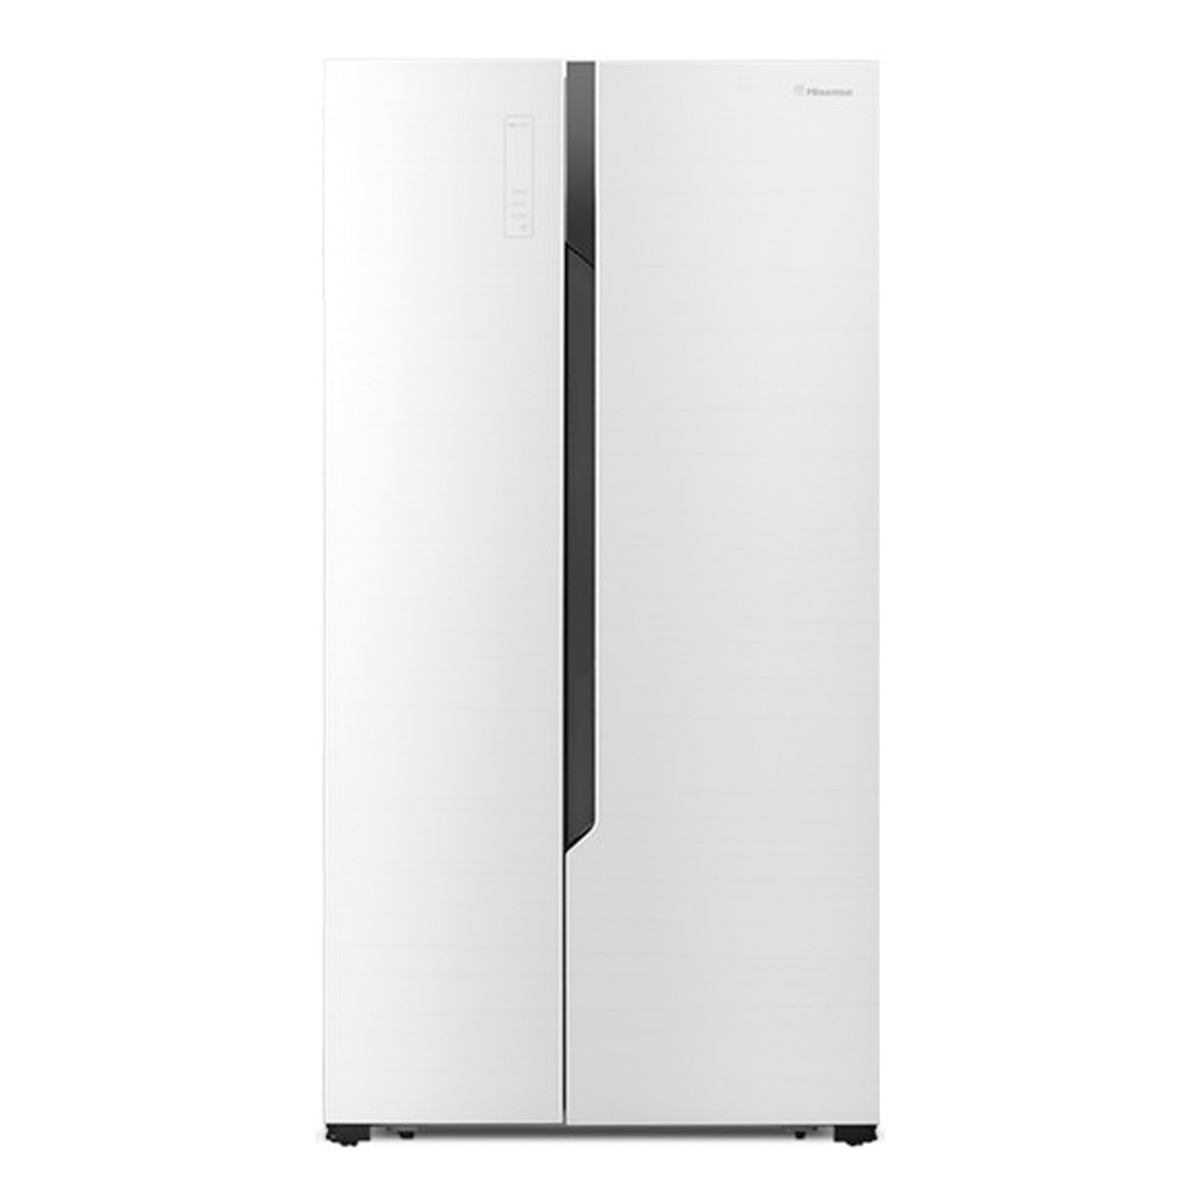 Hisense HR6SBSFF566 566L Side by Side Fridge